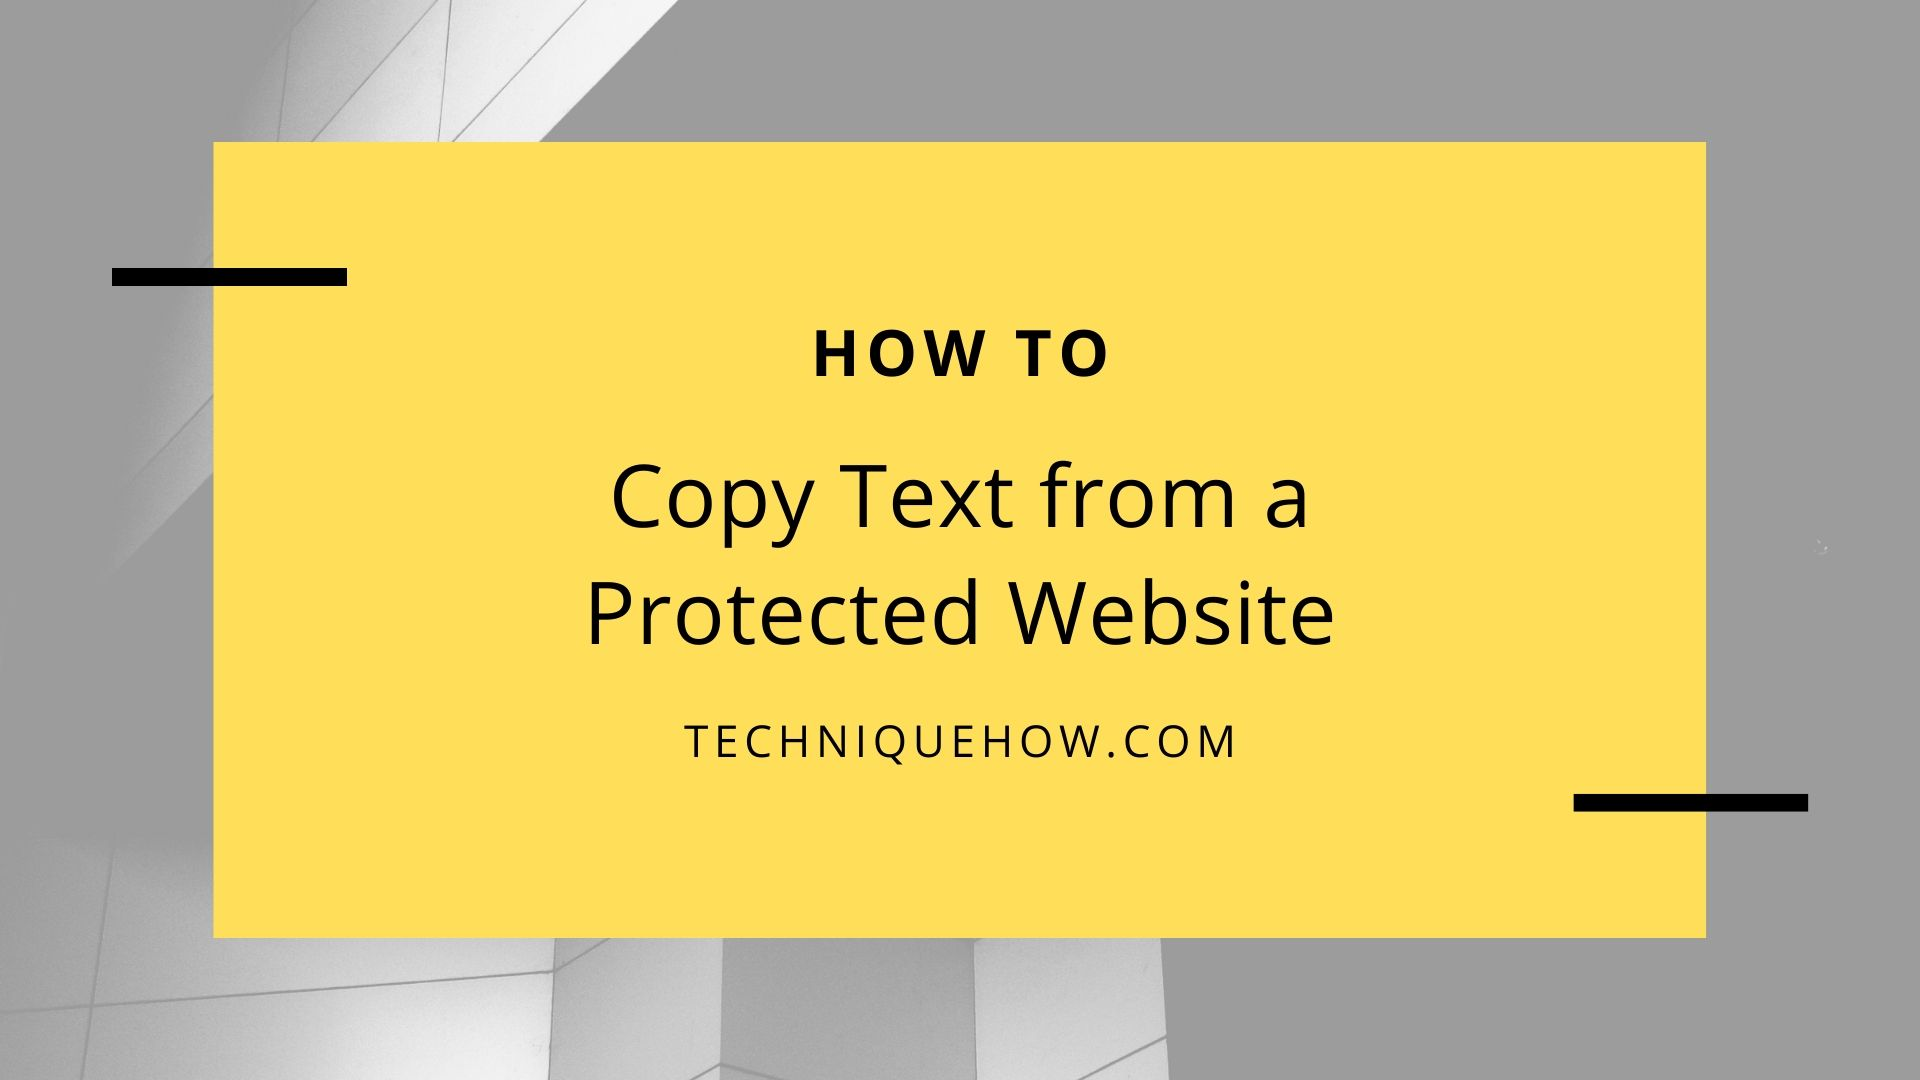 Copy Text from a Protected Website